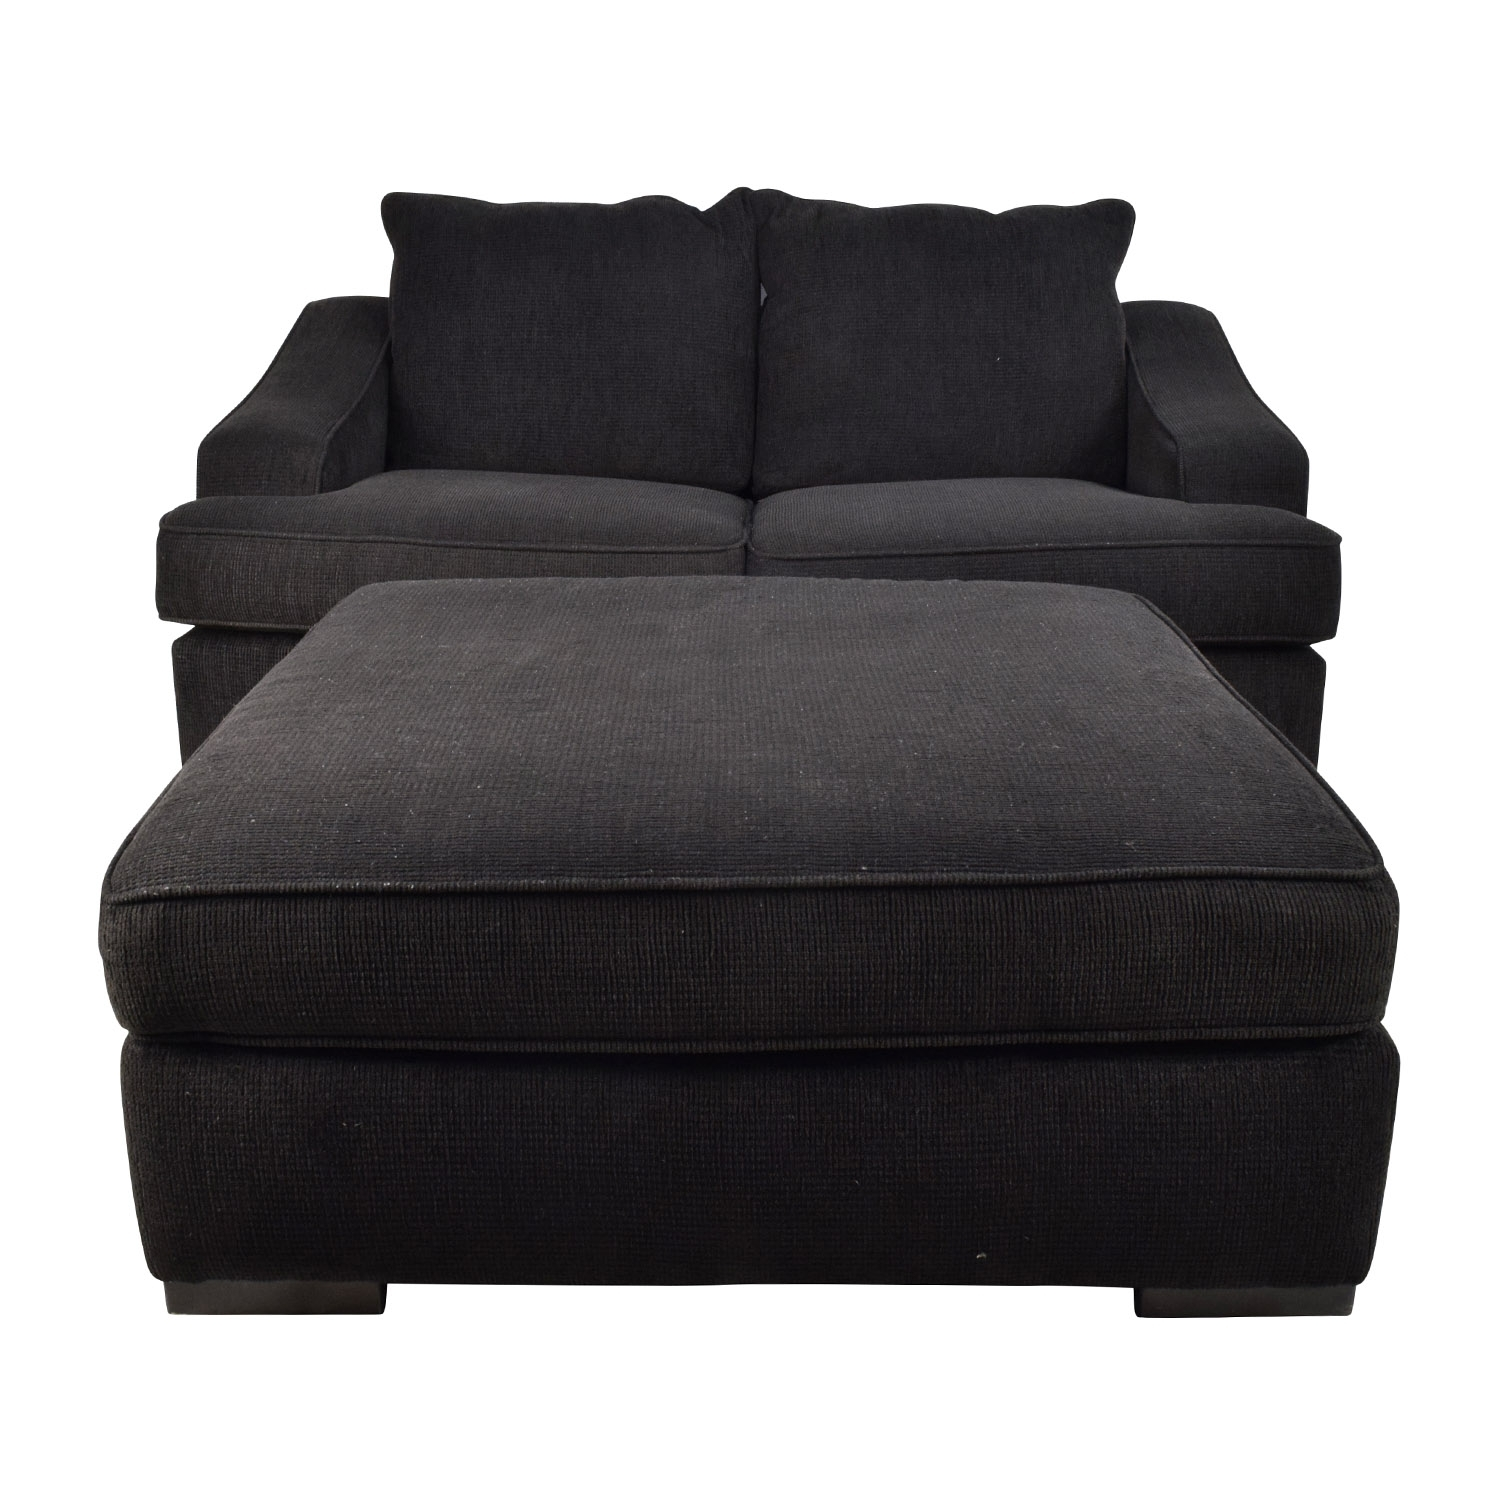 67% Off - Black Cloth Loveseat And Matching Oversized Ottoman / Sofas within Loveseats With Ottoman (Image 3 of 15)